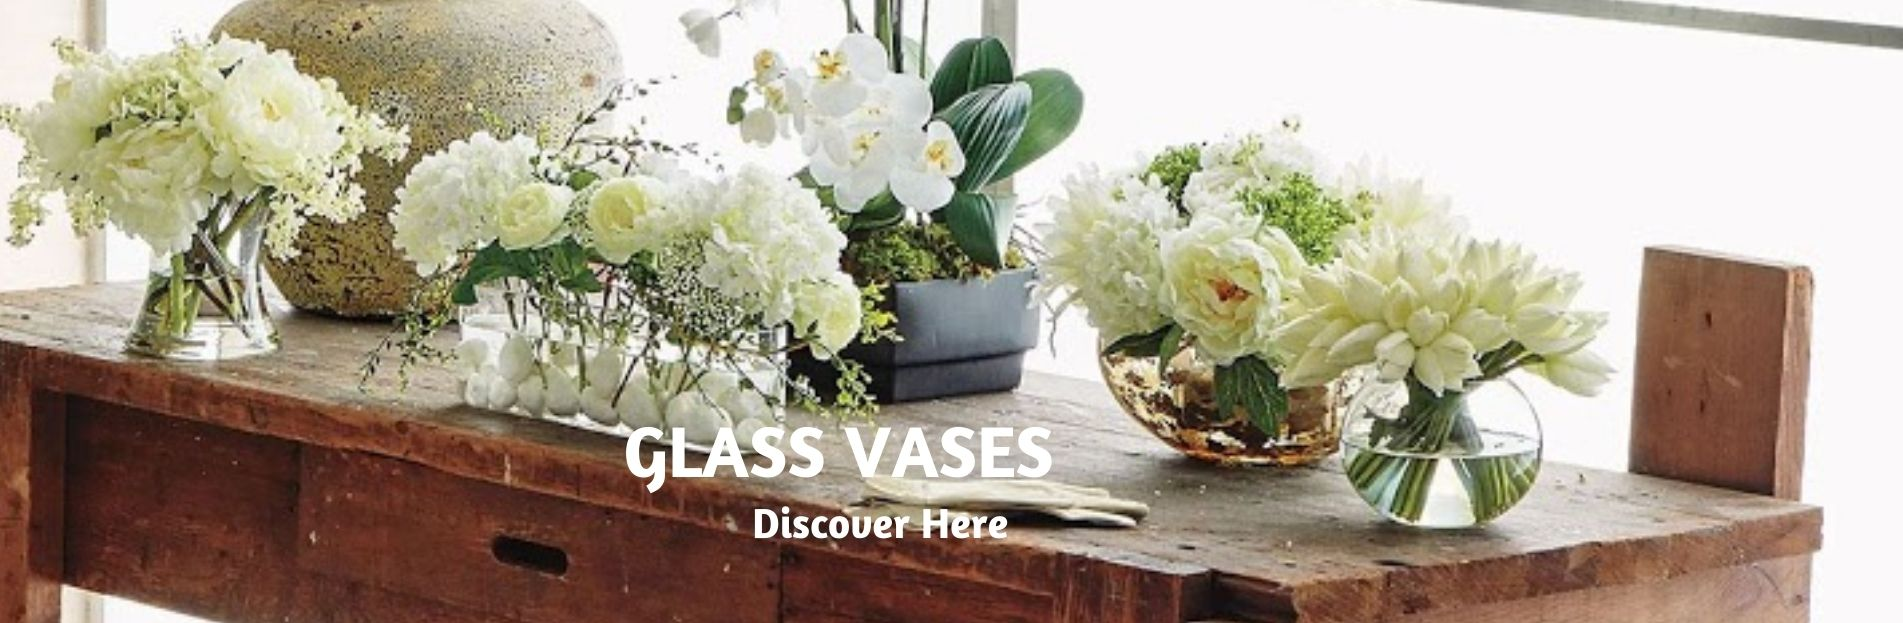 clear glass vases for table arrangements and for gifts